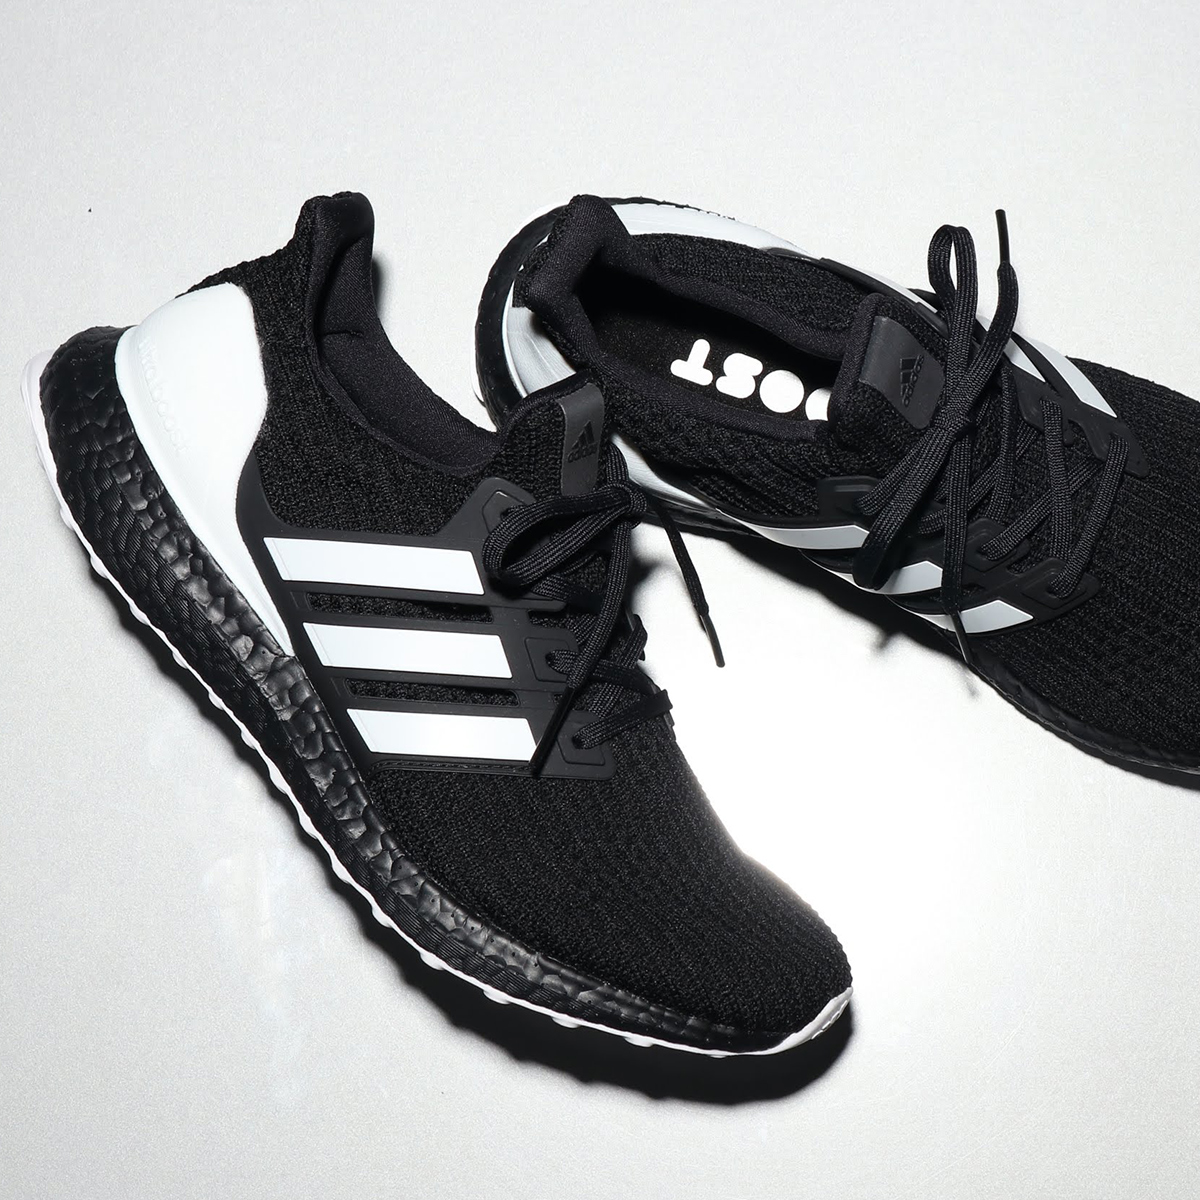 5fc4e7d38fae0 ... 4.0 Triple Black. Sold Out. -adidas-chinh-hang-ultra-boost-4-0-oreo